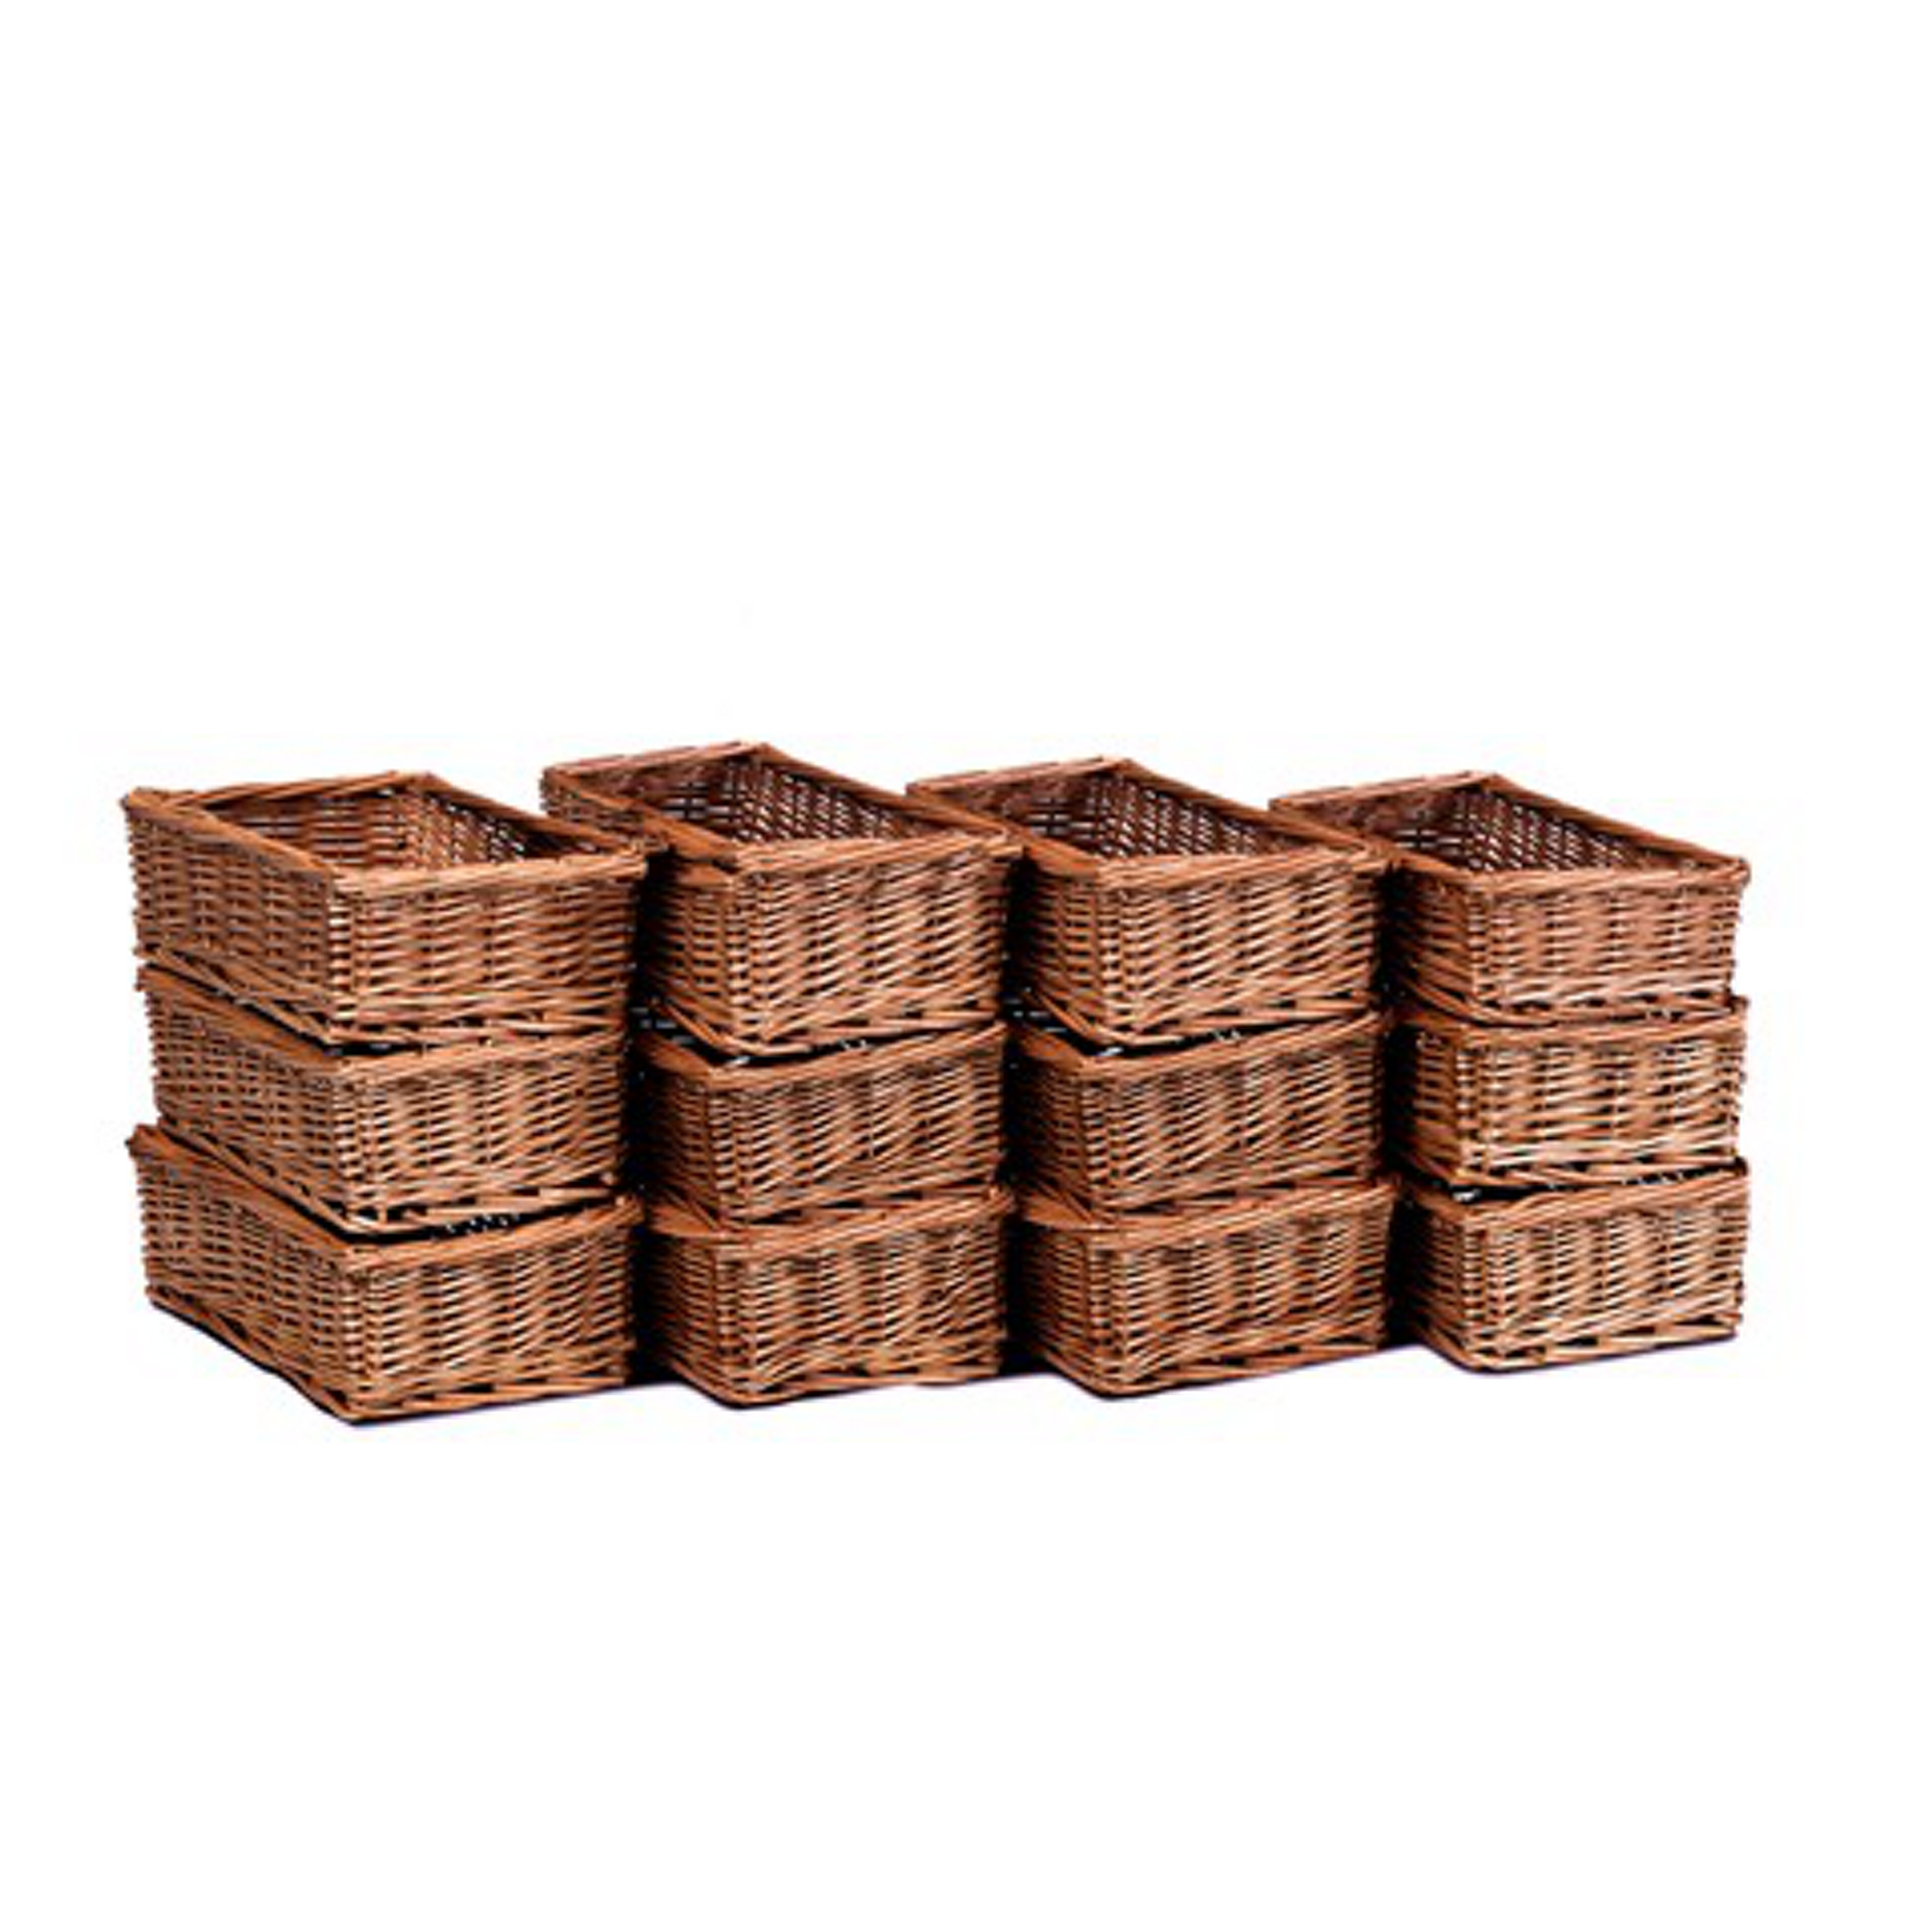 Small Baskets Gls Educational Supplies